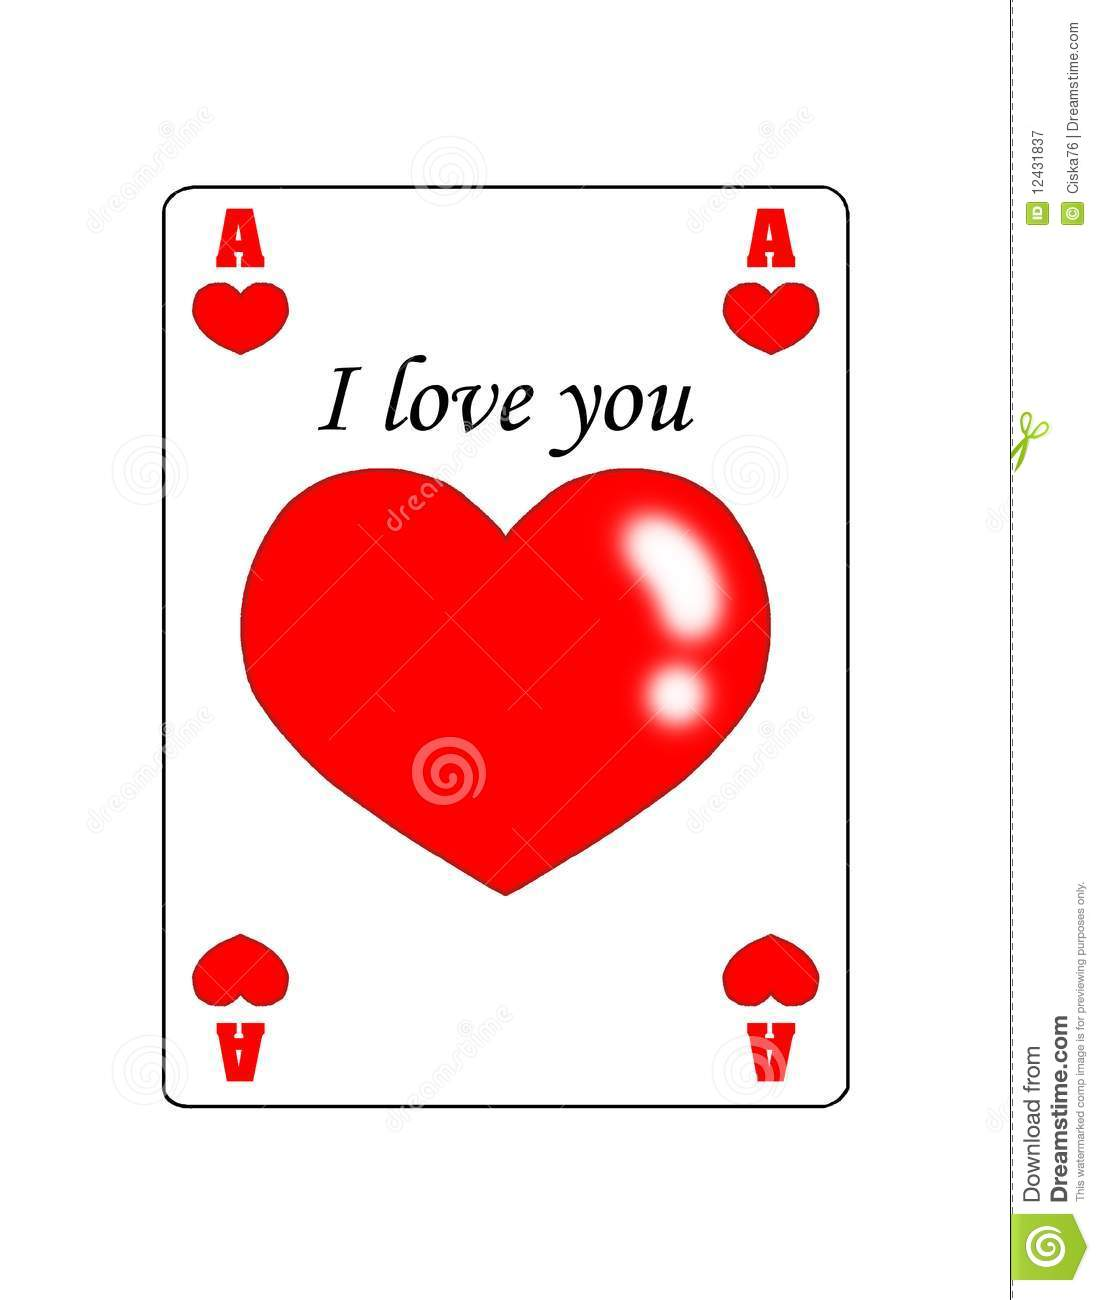 Love Ace Of Hearts Royalty Free Stock Photography Image Pictures Of Hearts That Say I You To Color